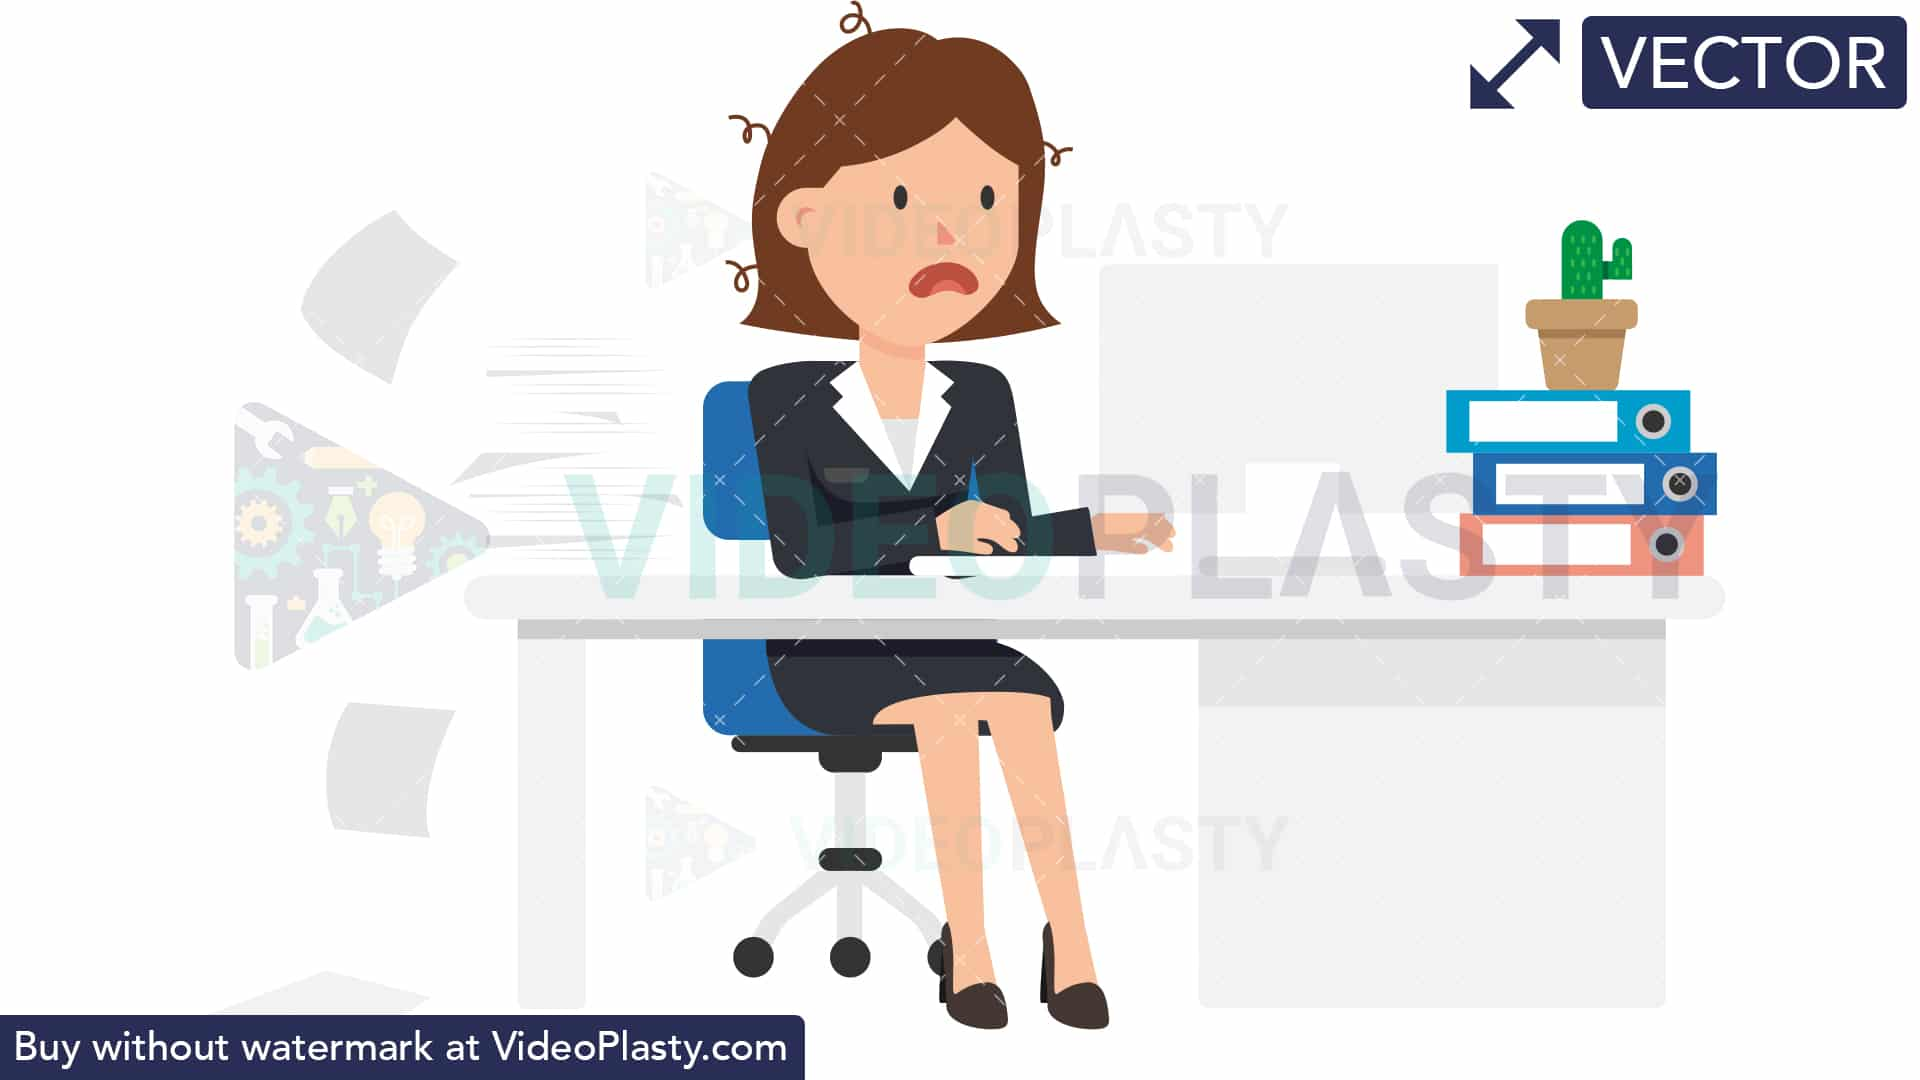 Picture of a people stressed at a desk clipart vector royalty free stock Corporate Woman Being Stressed at Work [VECTOR] vector royalty free stock